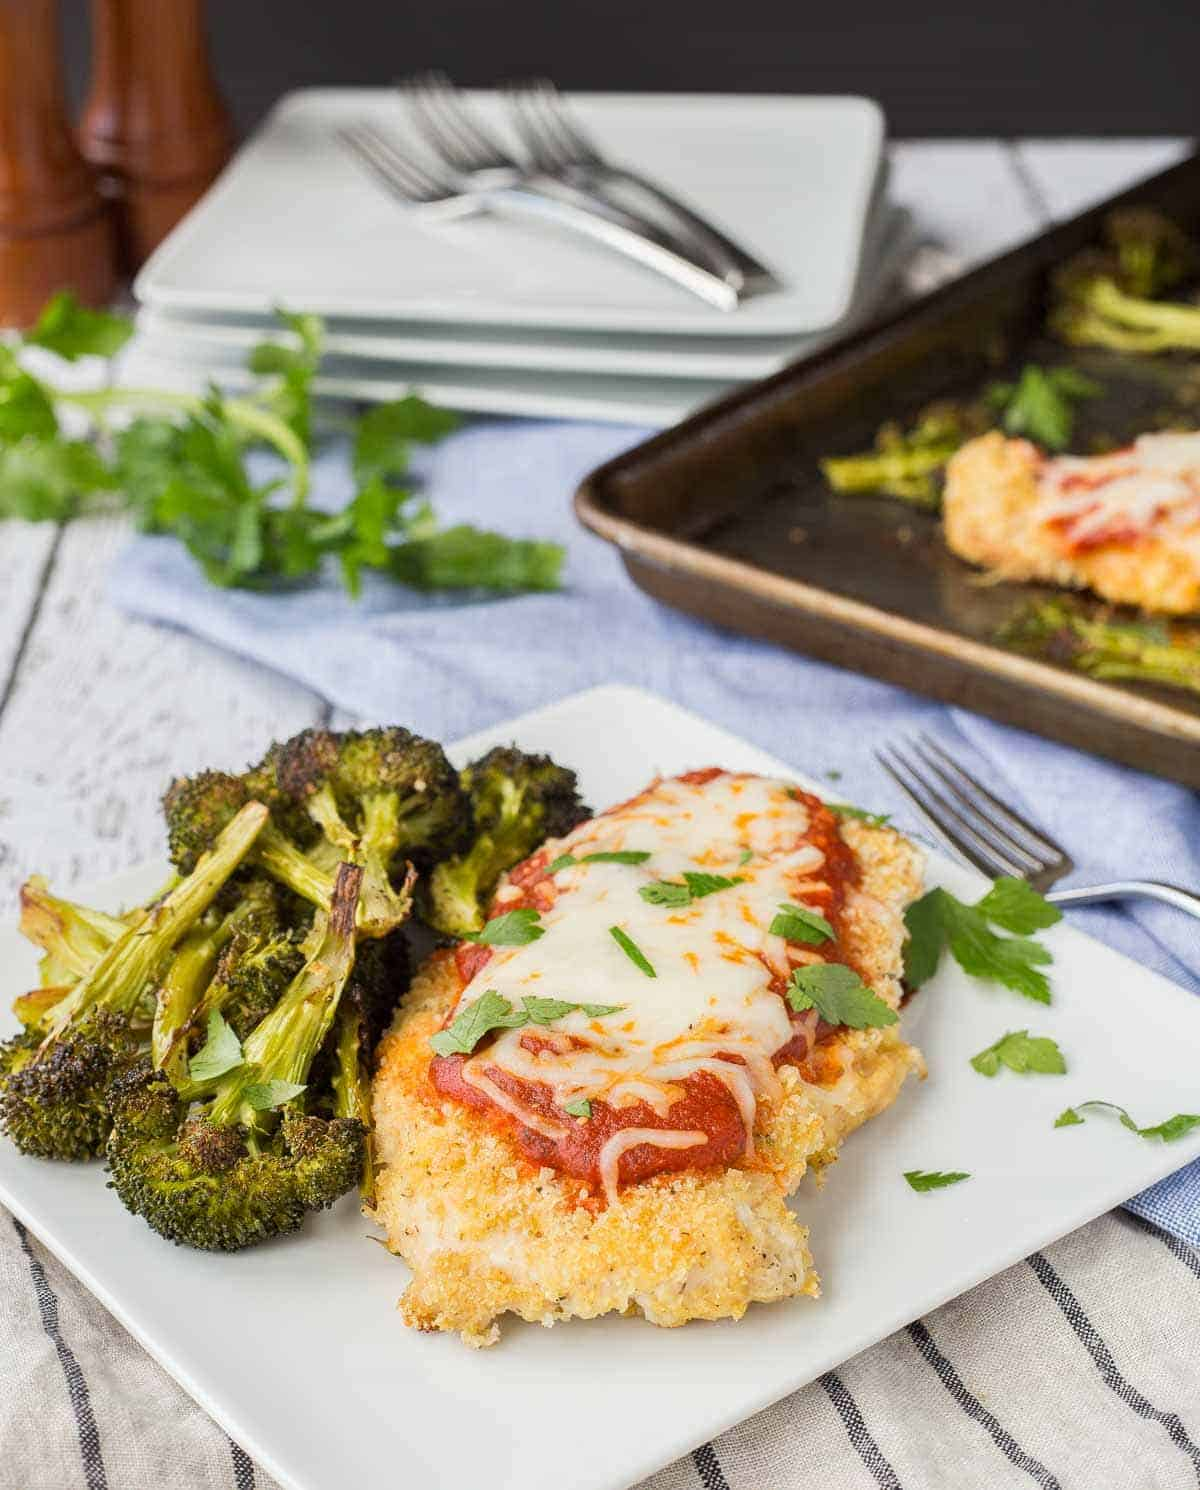 One serving of chicken Parmesan and broccoli on square white plate with fork.